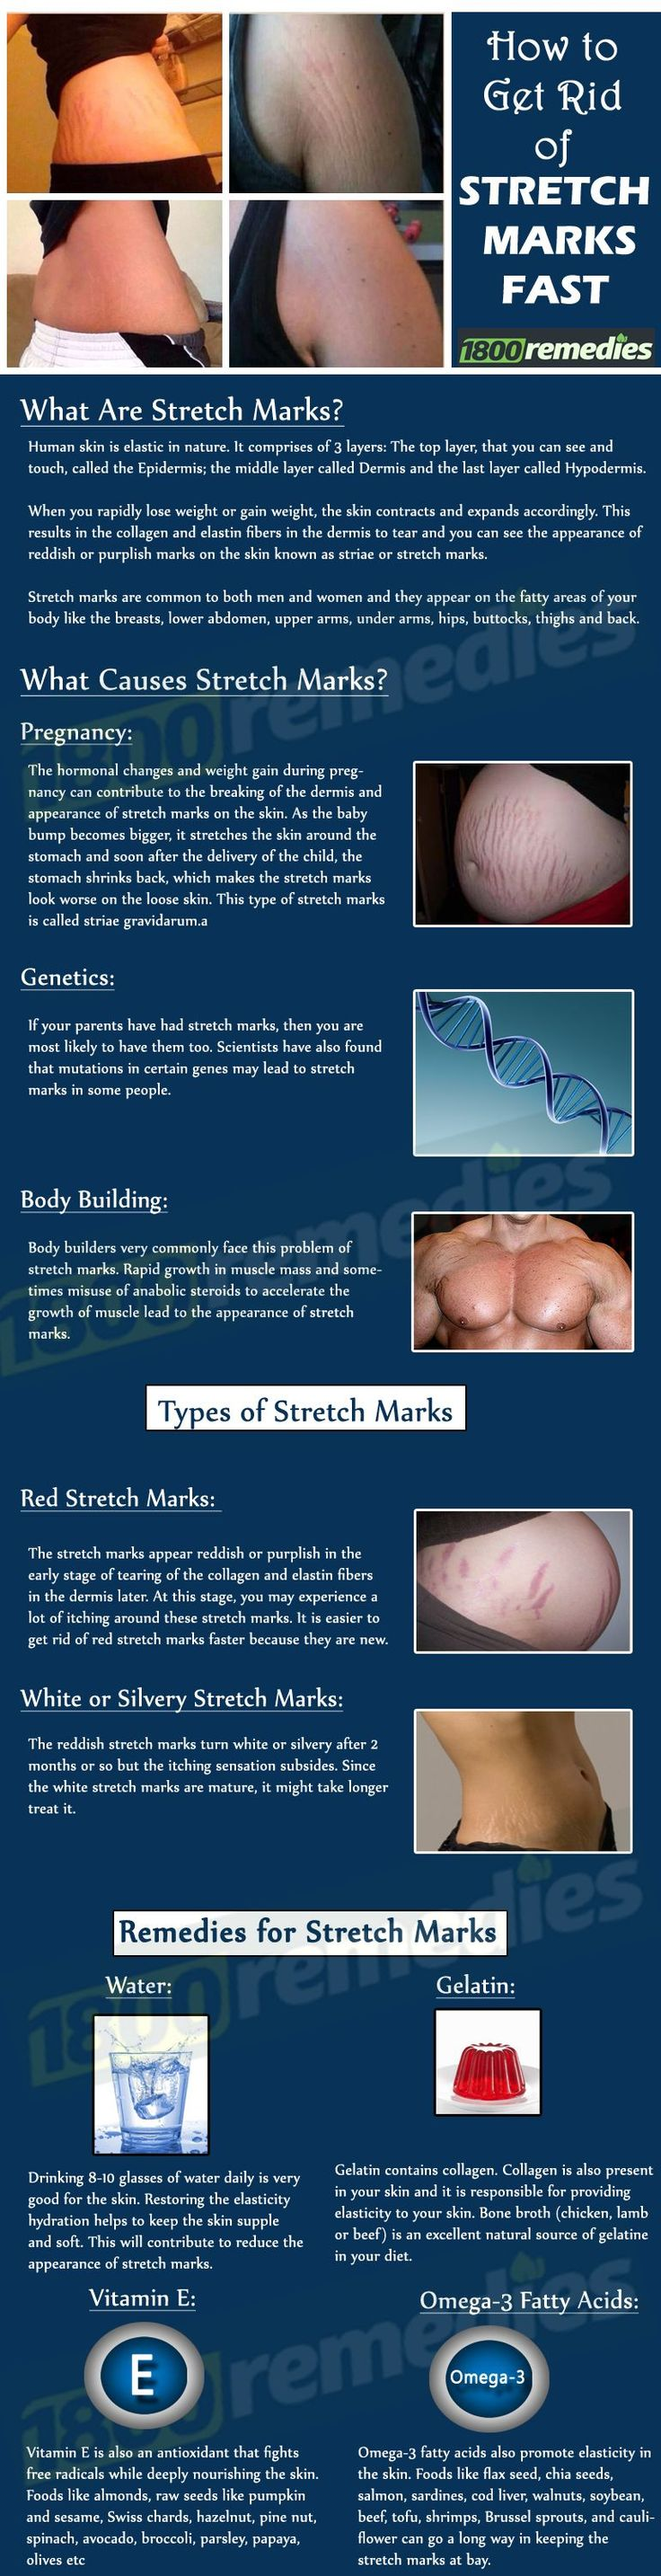 Are you desperate to know how to get rid of stretch marks? No worries now as there are many natural ways to get rid of stretch marks. You can either follow dietary or topical remedies or both to treat the stretch marks.